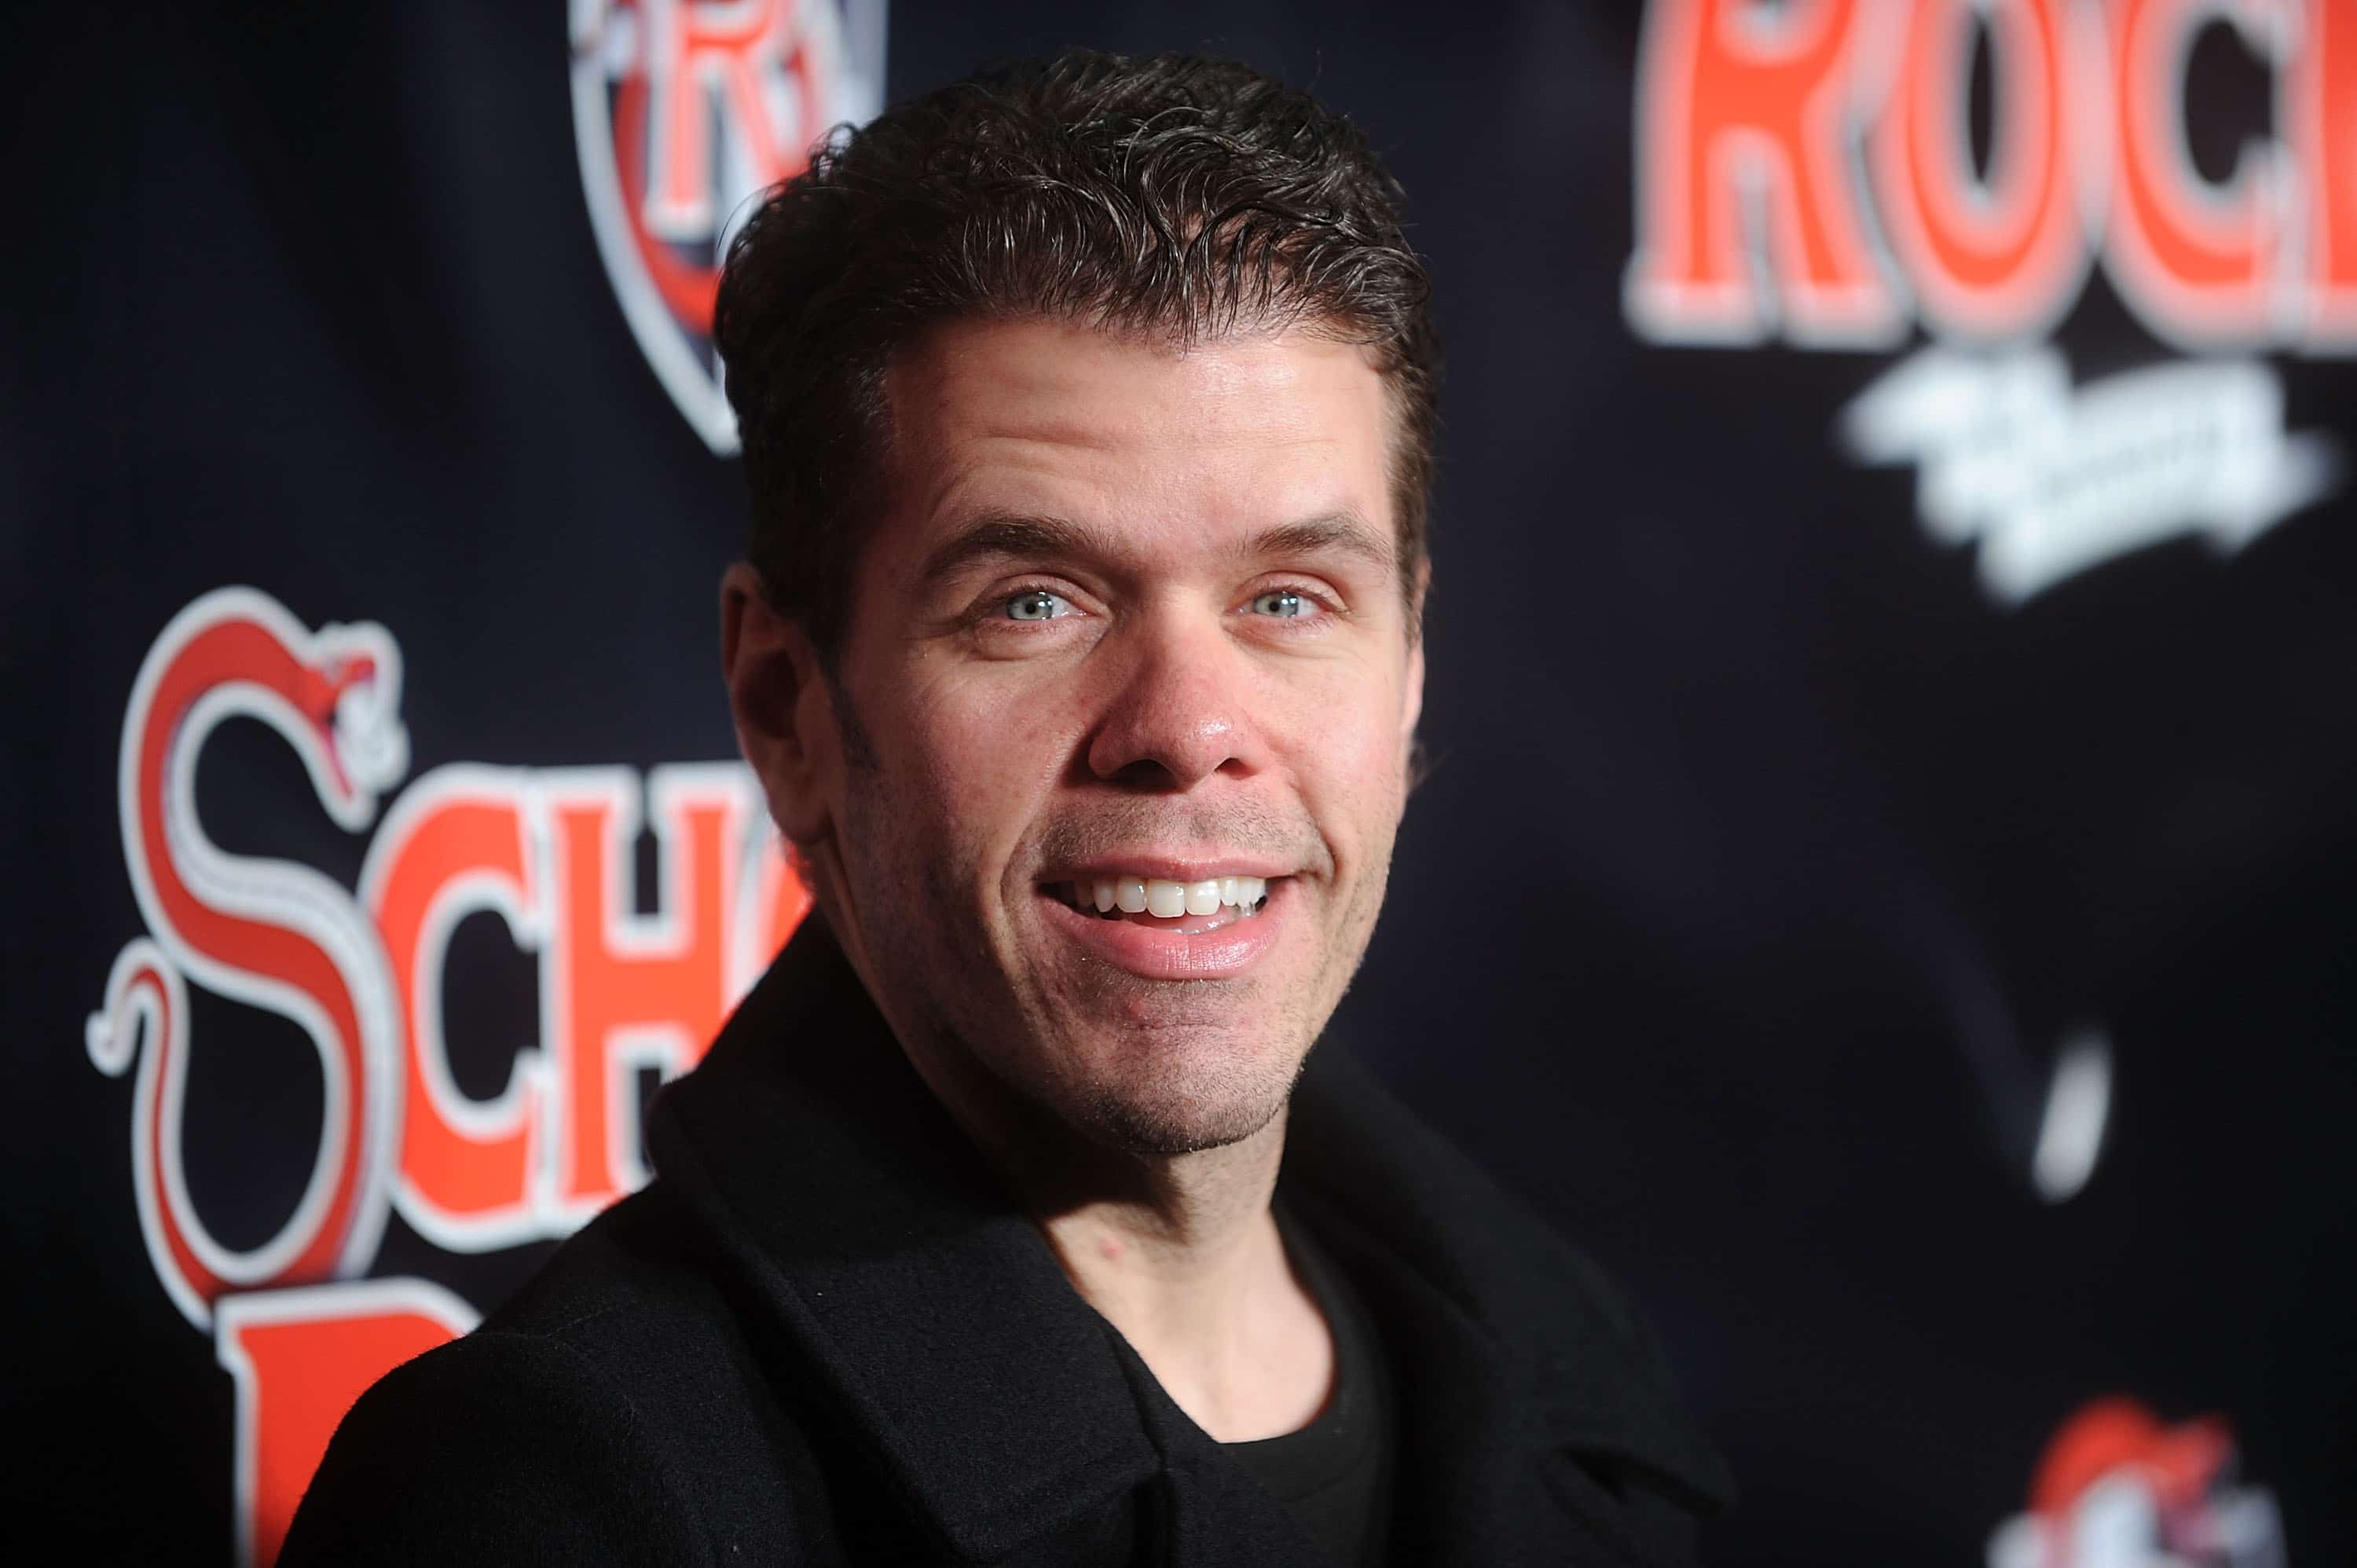 Twitter Destroys Perez Hilton After His Bad Take on Birthright Citizenship